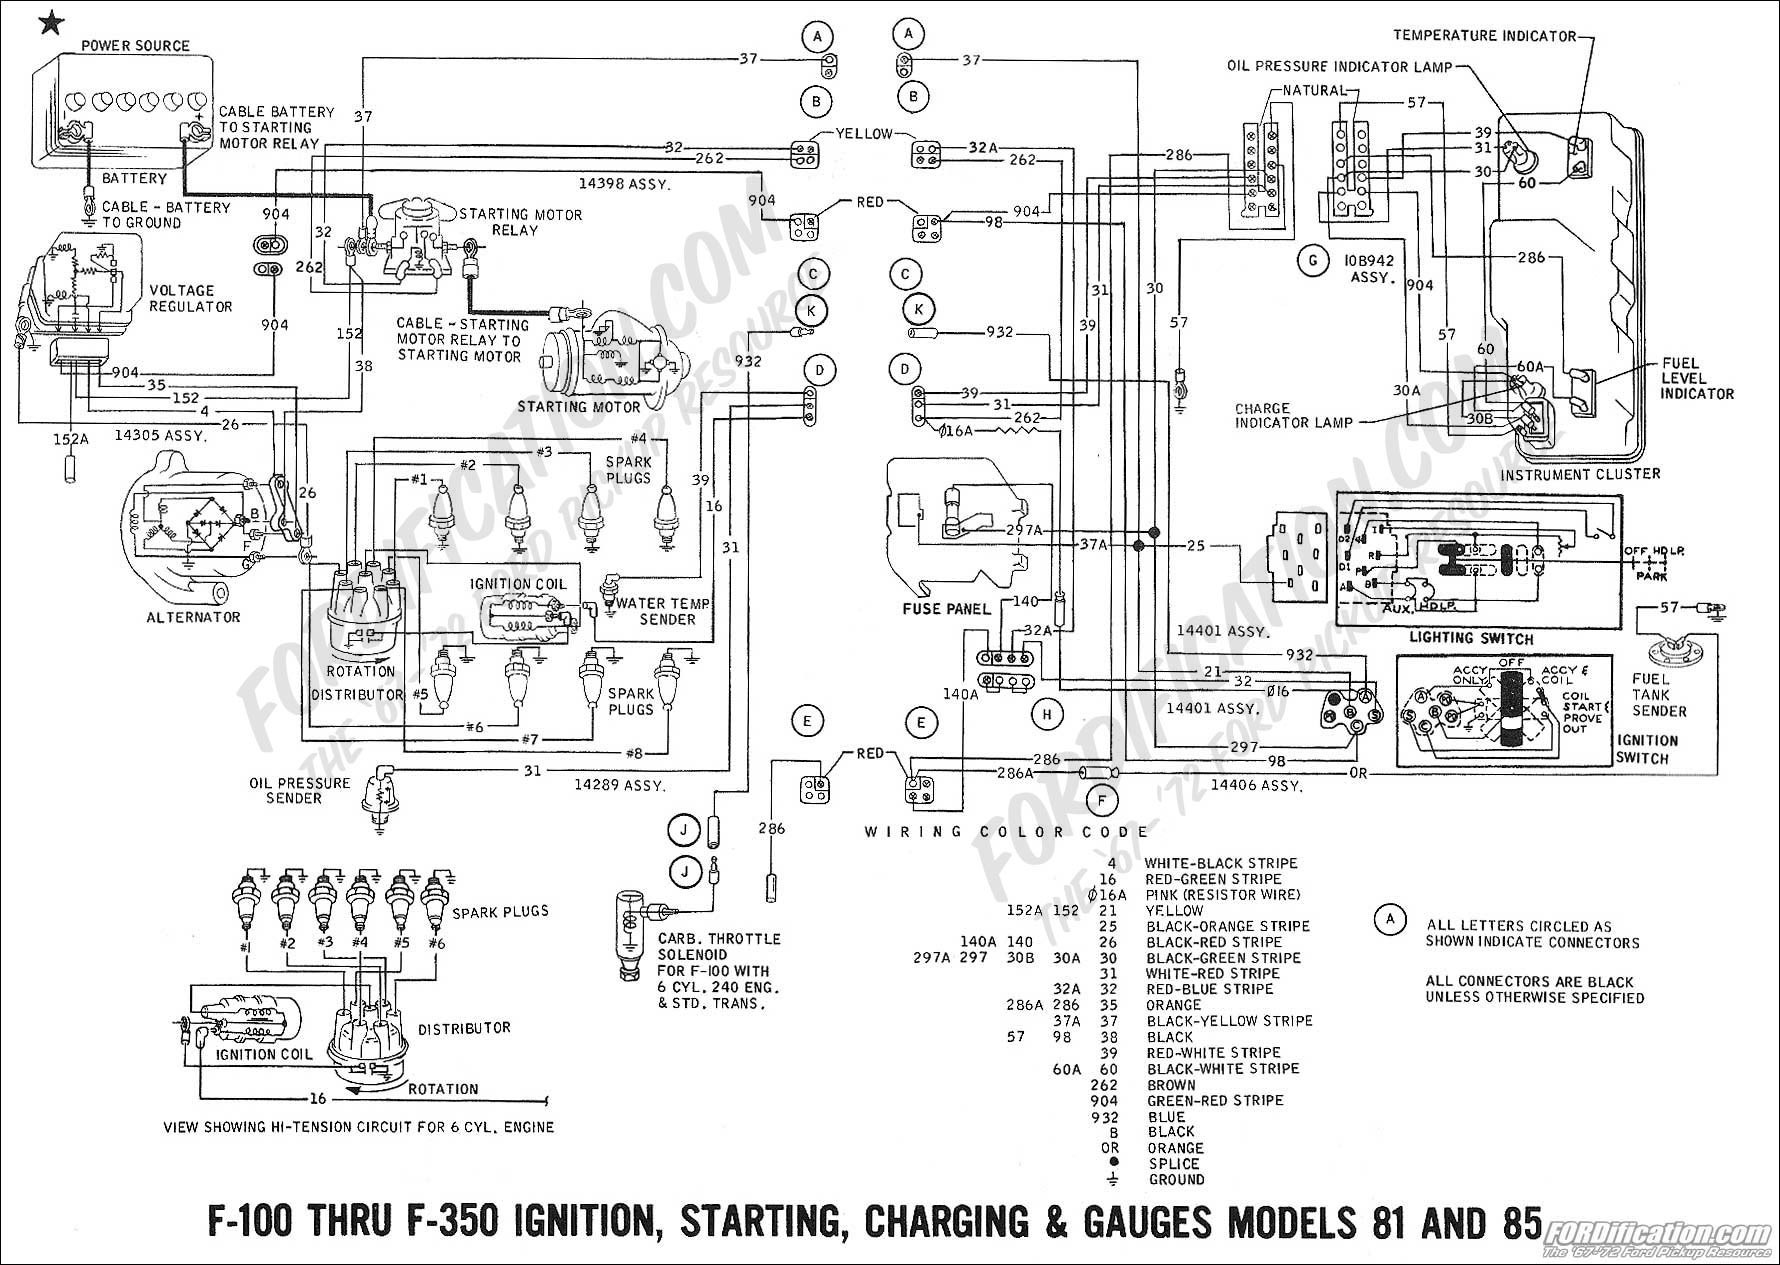 1957 Ford Ignition Wiring Automotive Block Diagram \u2022 Ford COP Ignition  Wiring Diagrams 1957 Ford Ignition Wiring Diagram